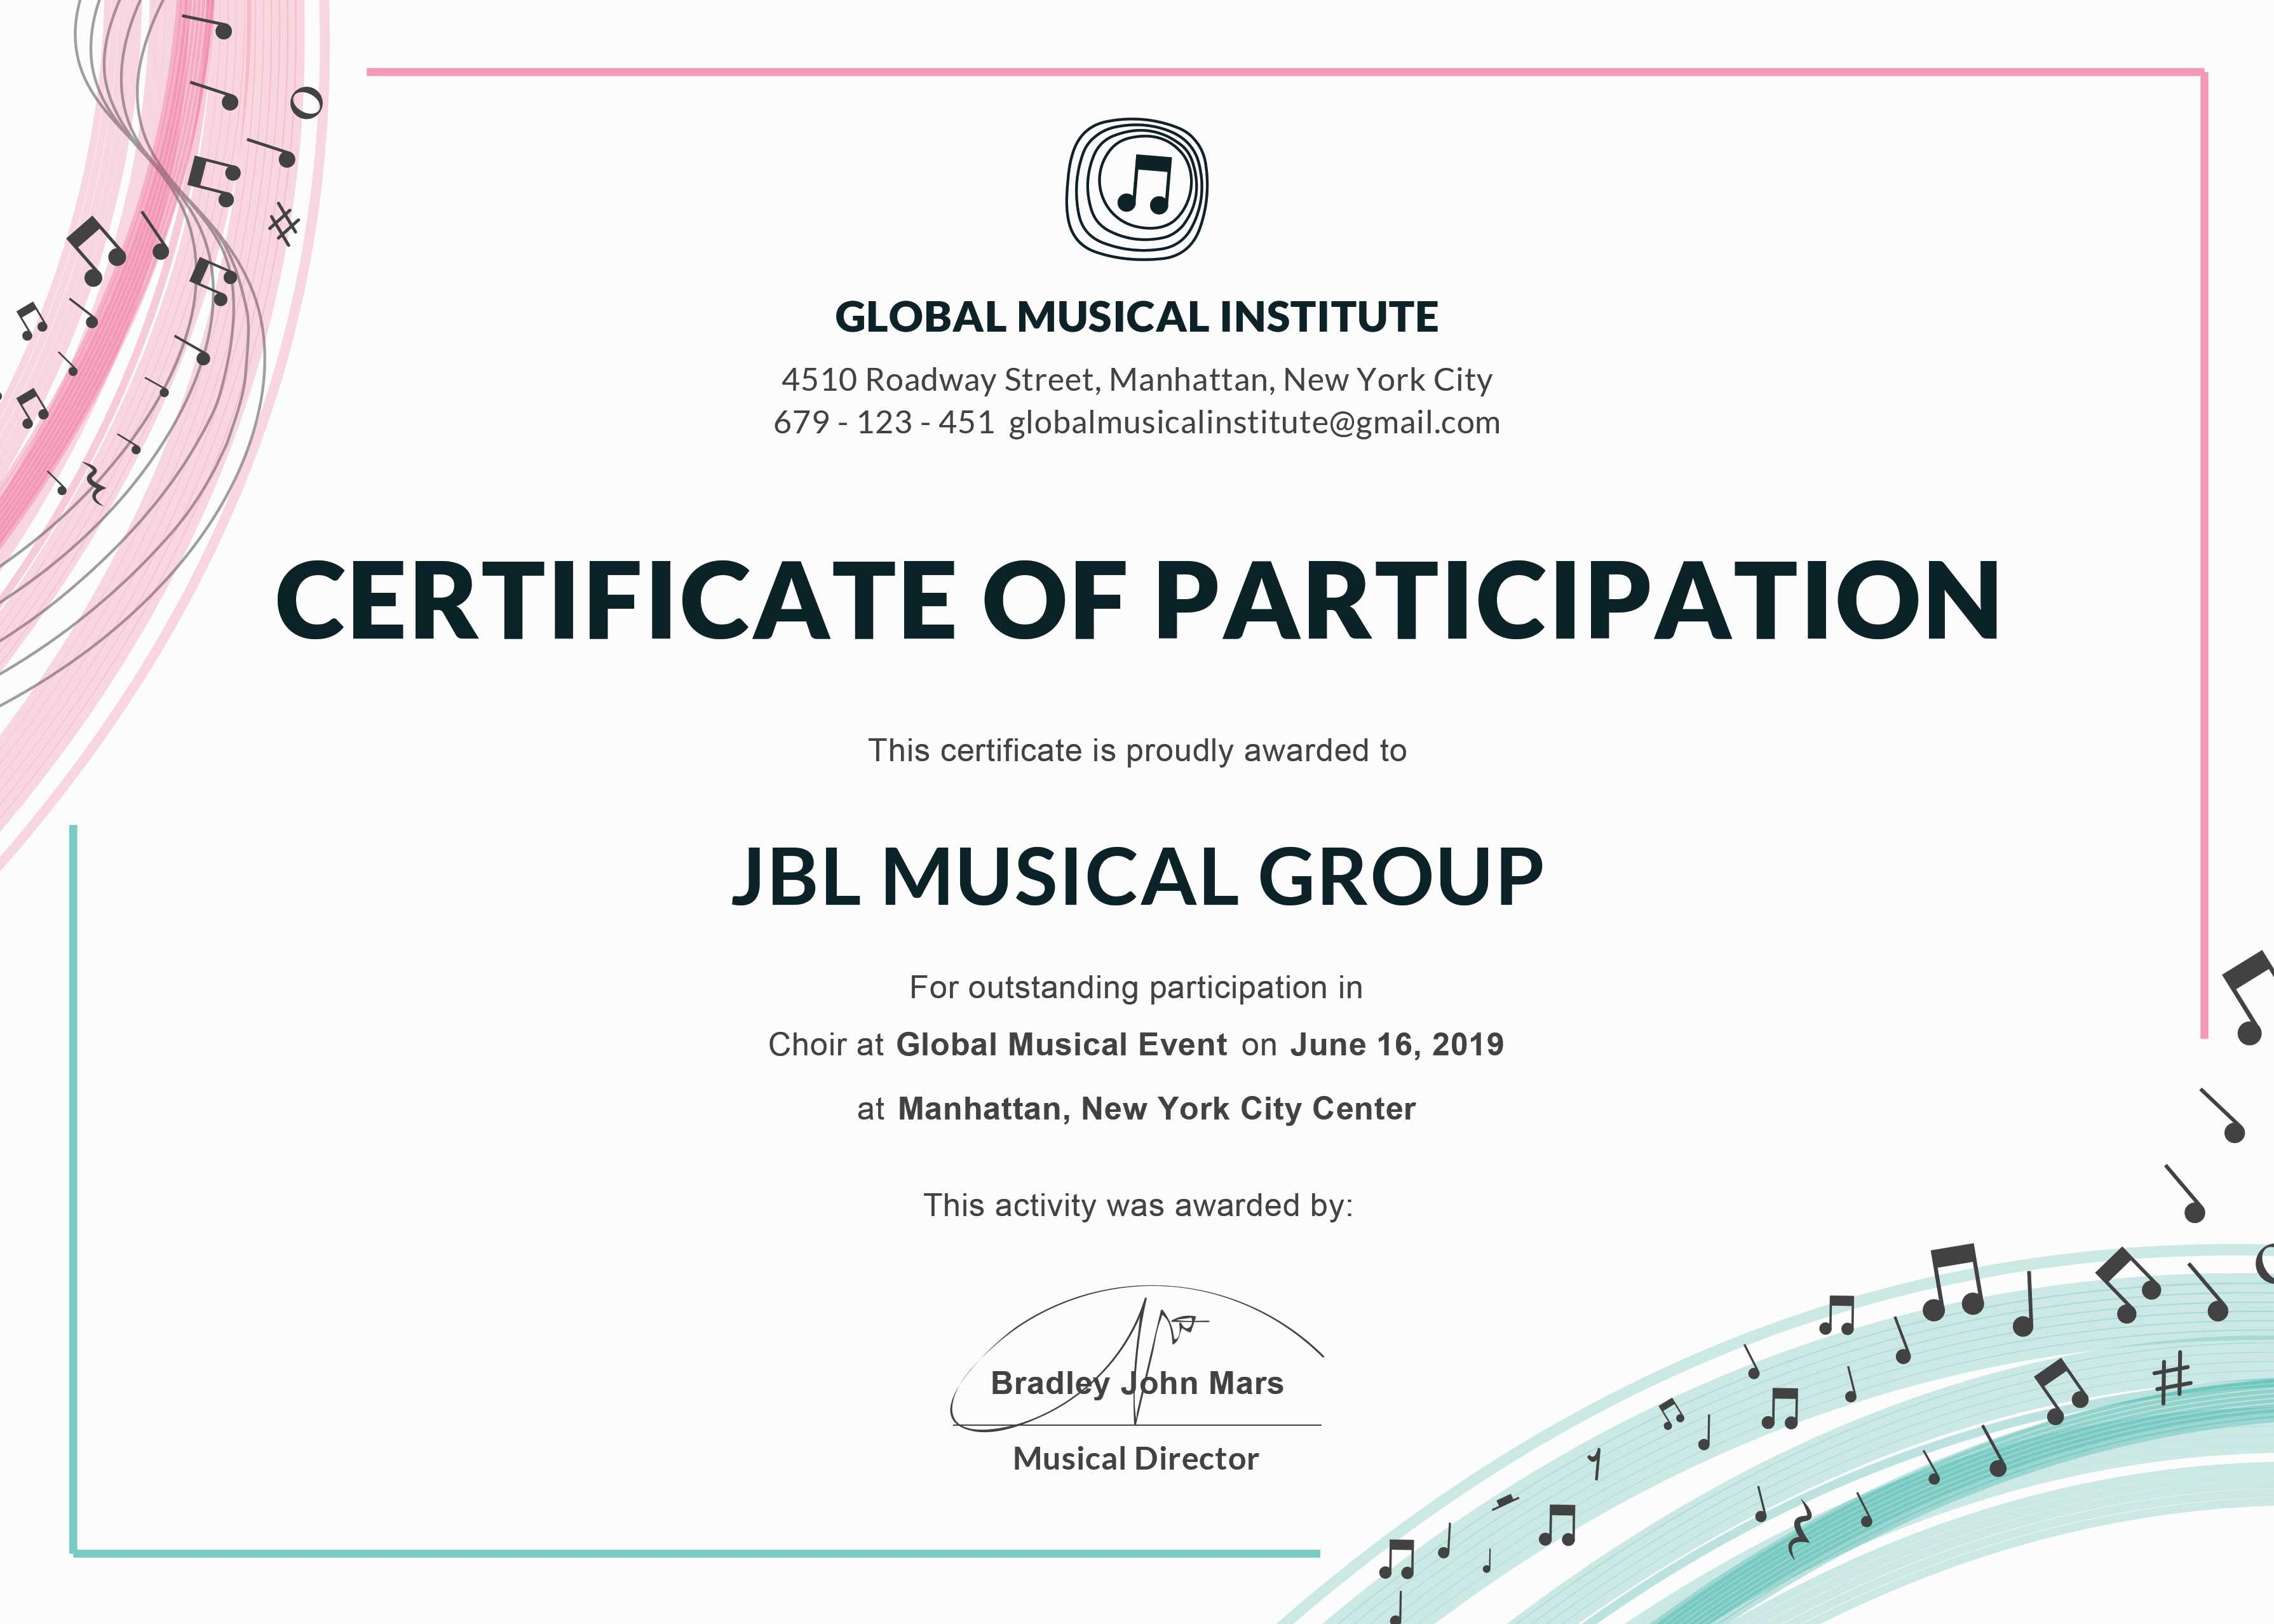 Certificate Of Participation Template Or Word Doc With Docx Intended For Certificate Of Participation Template Doc